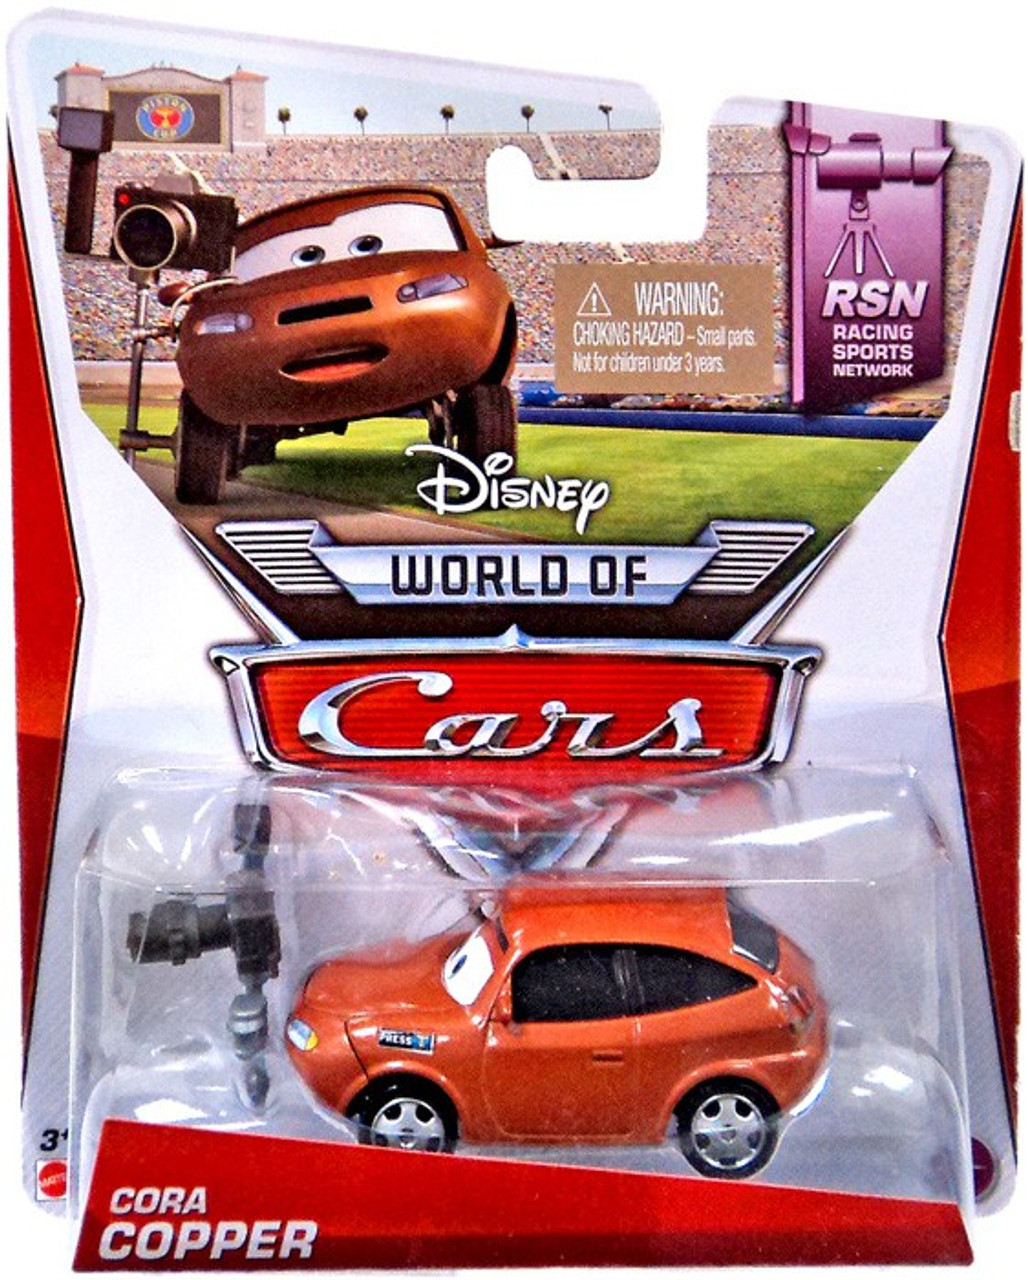 Disney Cars The World of Cars Cora Copper Diecast Car #6 of 8